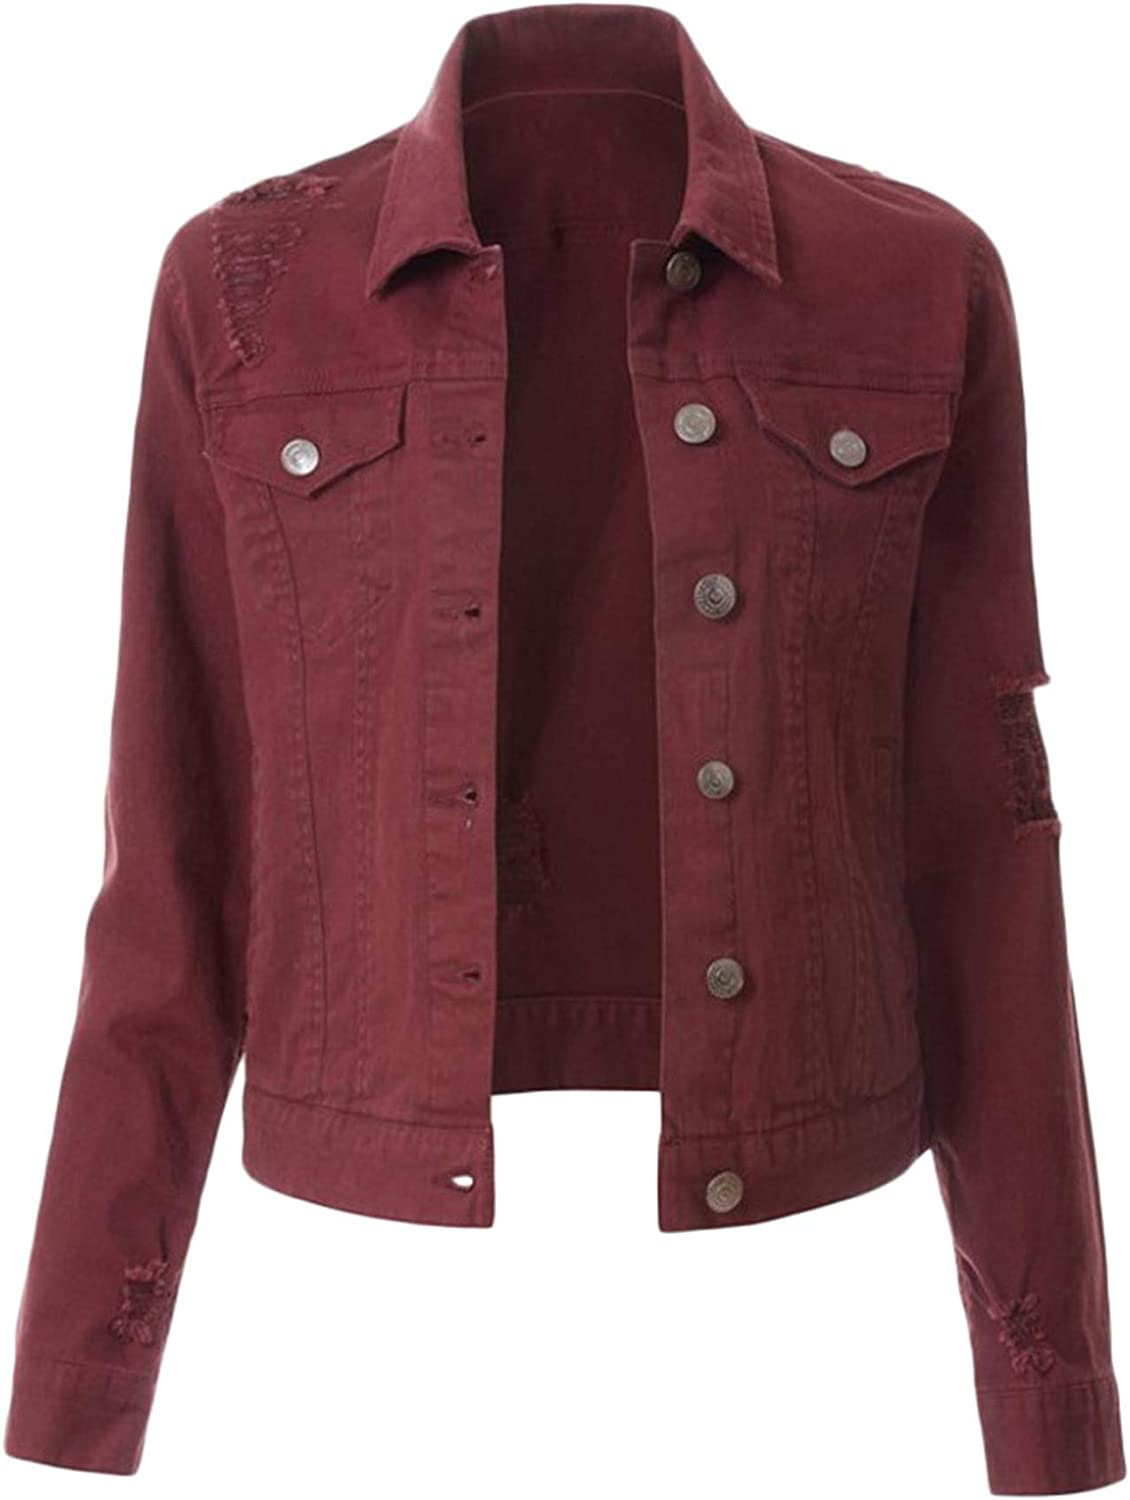 Soluo Women's Casual Long Sleeve Button Down Denim Jacket Classic Stretch Lightweight Vintage Washed Boyfriend Coat (Red Wine,Small)